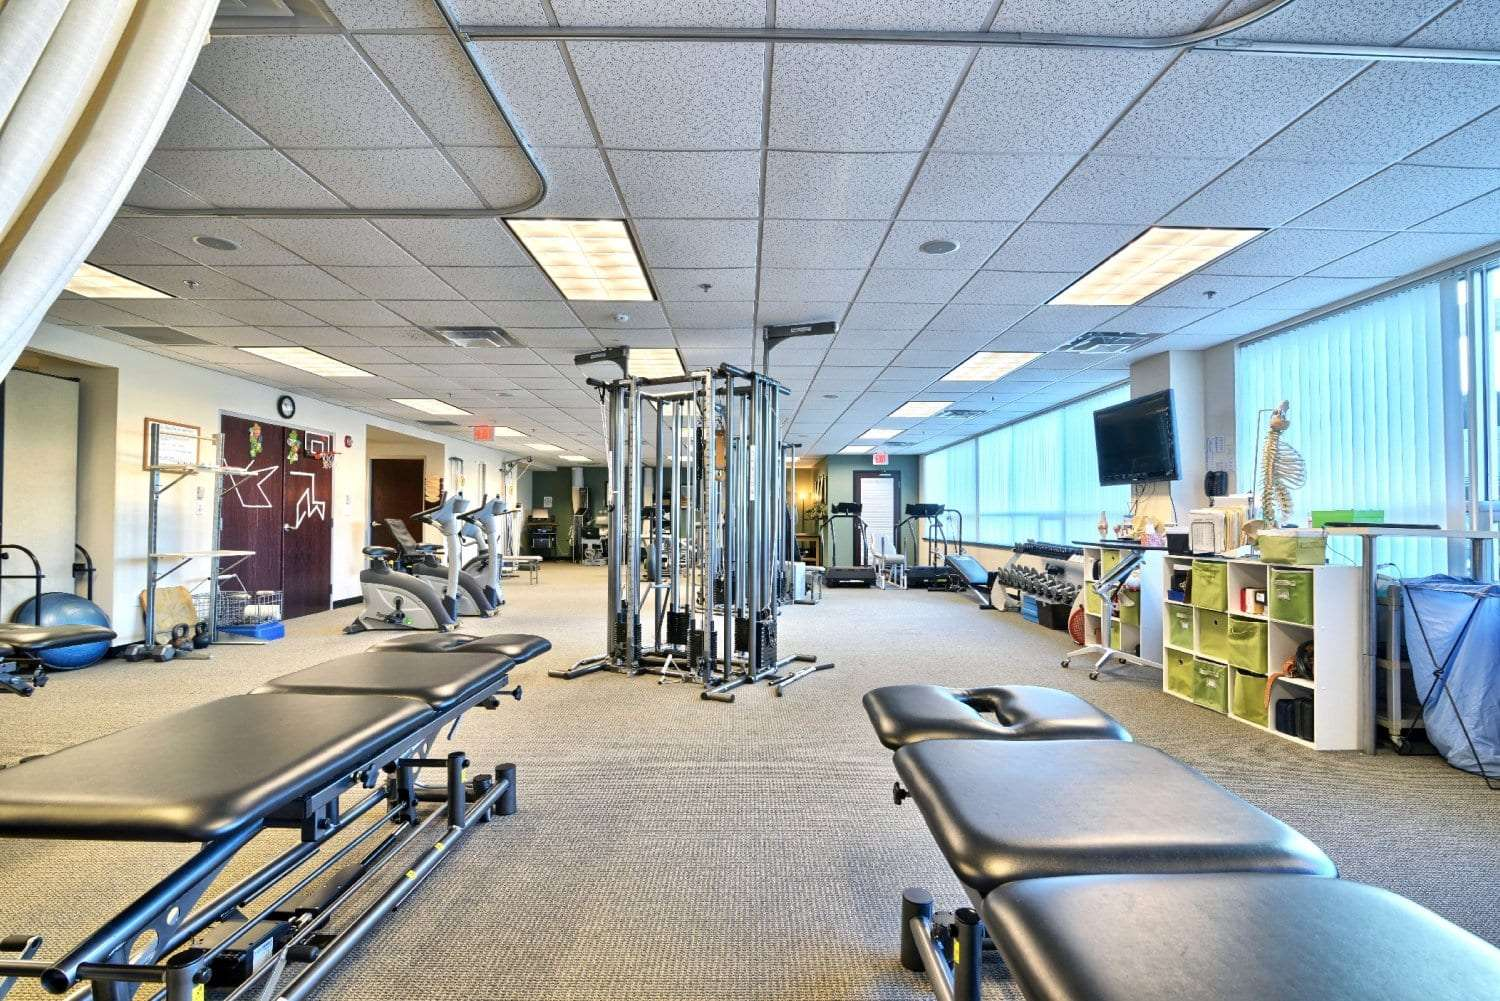 An image of the inside of our clean physical therapy clinic in Woburn, Massachusetts.